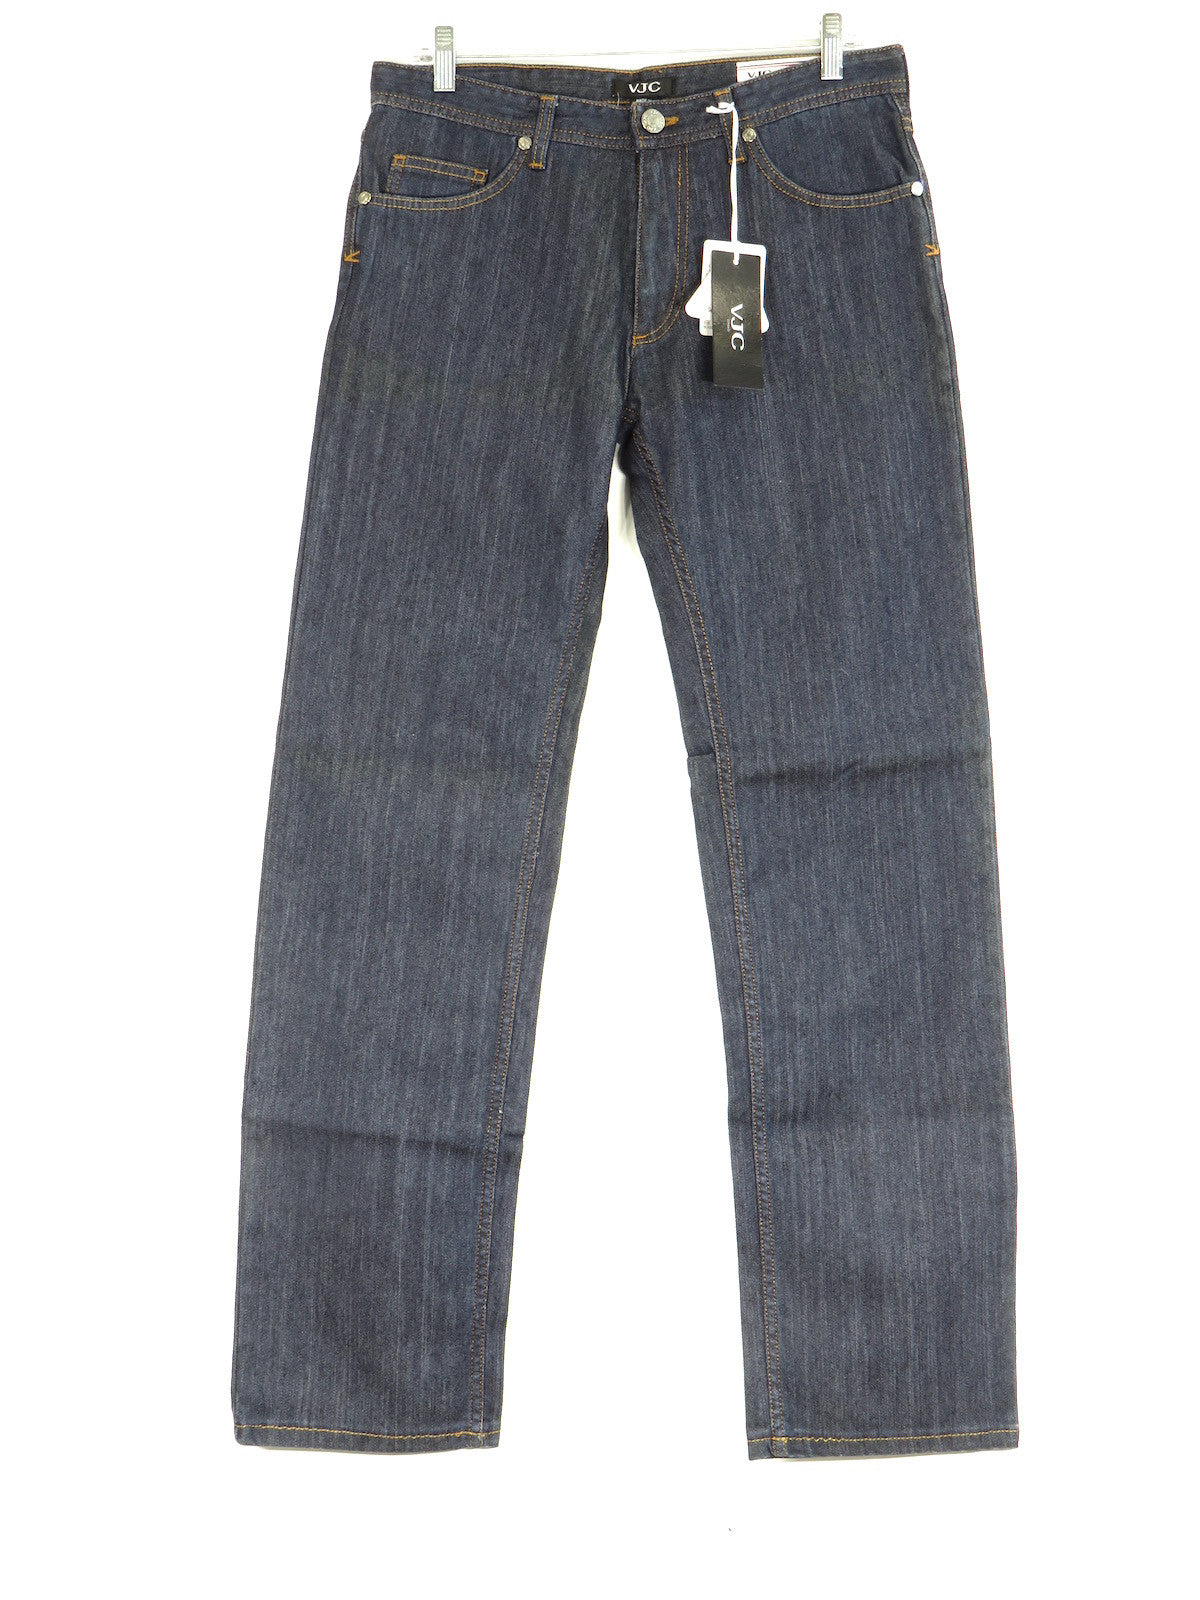 Versace Jeans Men/'s Dark Blue Regular Fit Straight Leg Jeans Size 33 34 36